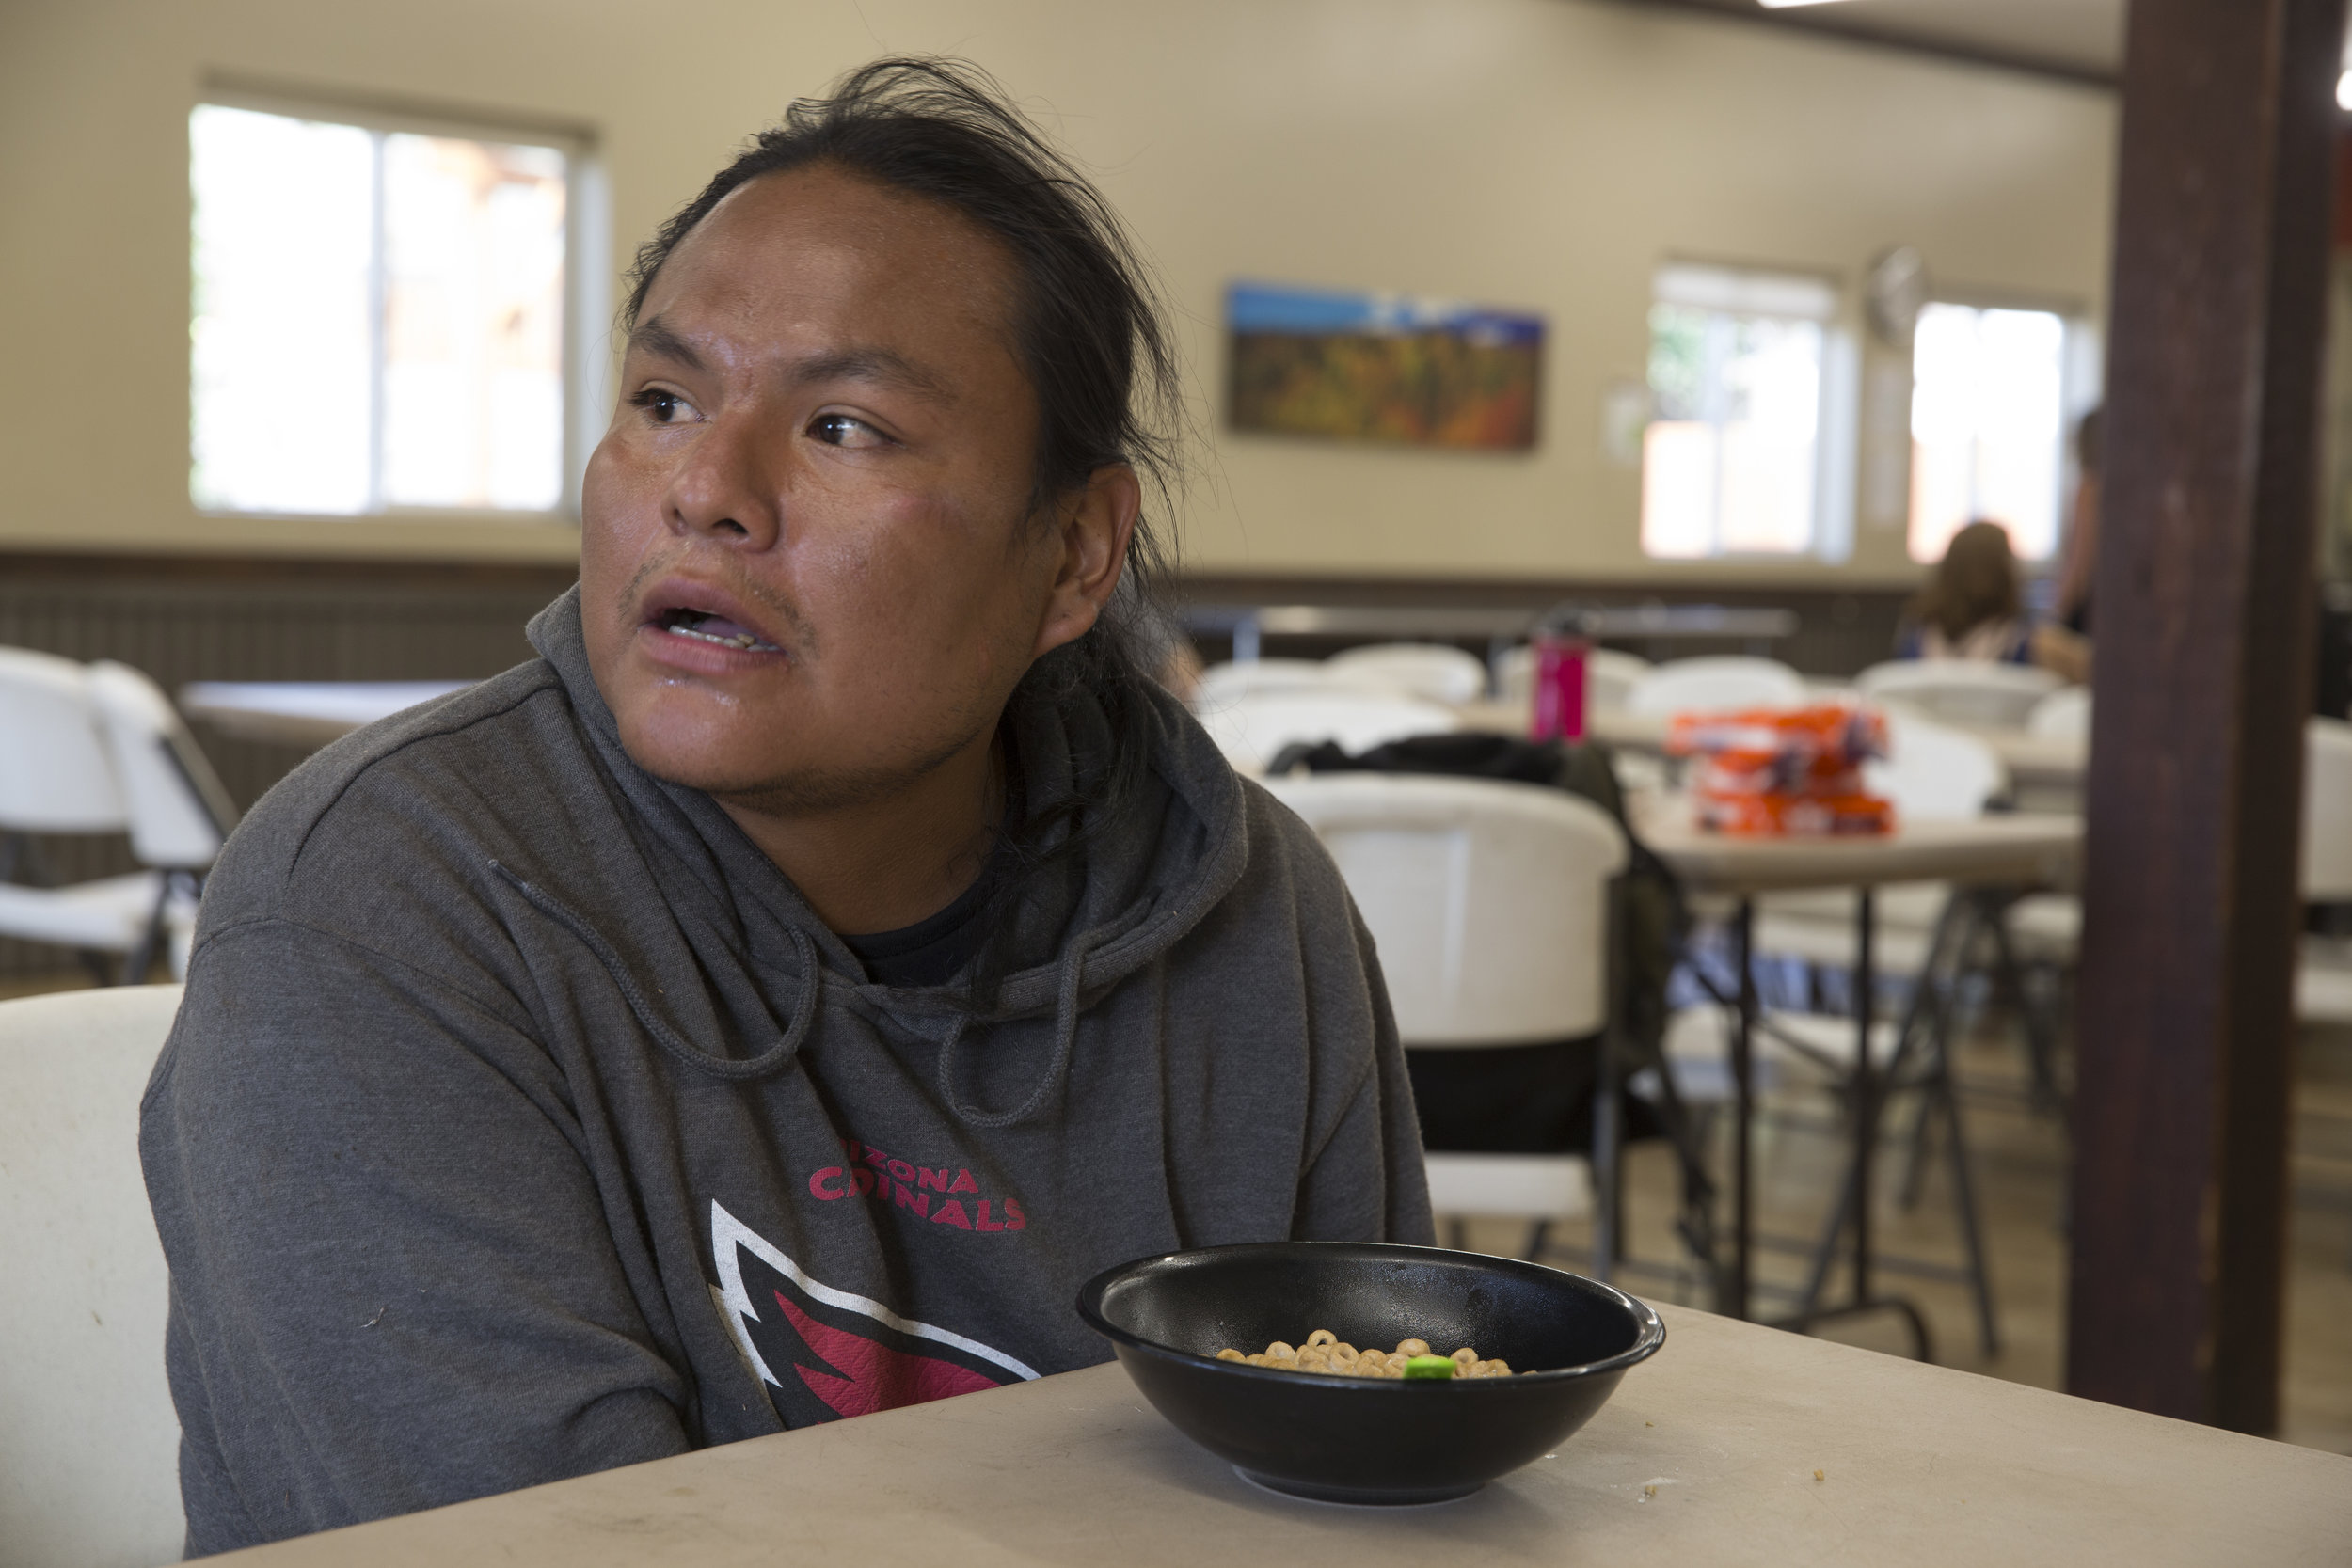 Shawn Agoodie came to Durango from the Navajo Nation in Arizona and hoped to enroll in a culinary arts program at Manna Soup Kitchen. (Scott DW Smith, Special to The Colorado Sun)